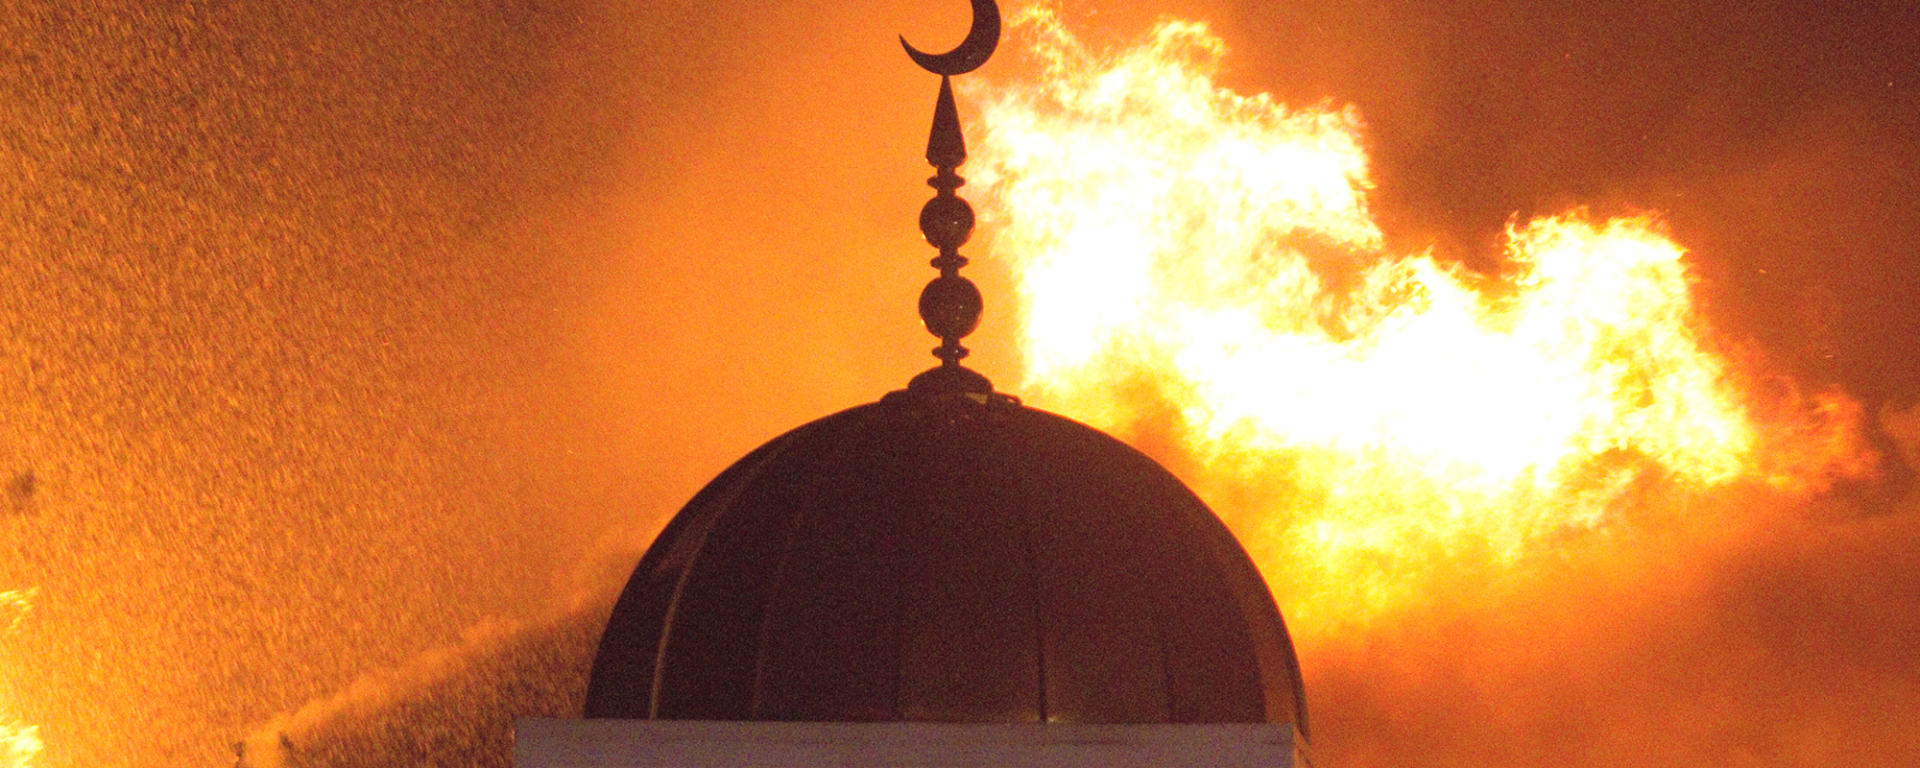 SWEDEN BURNING MOSQUES